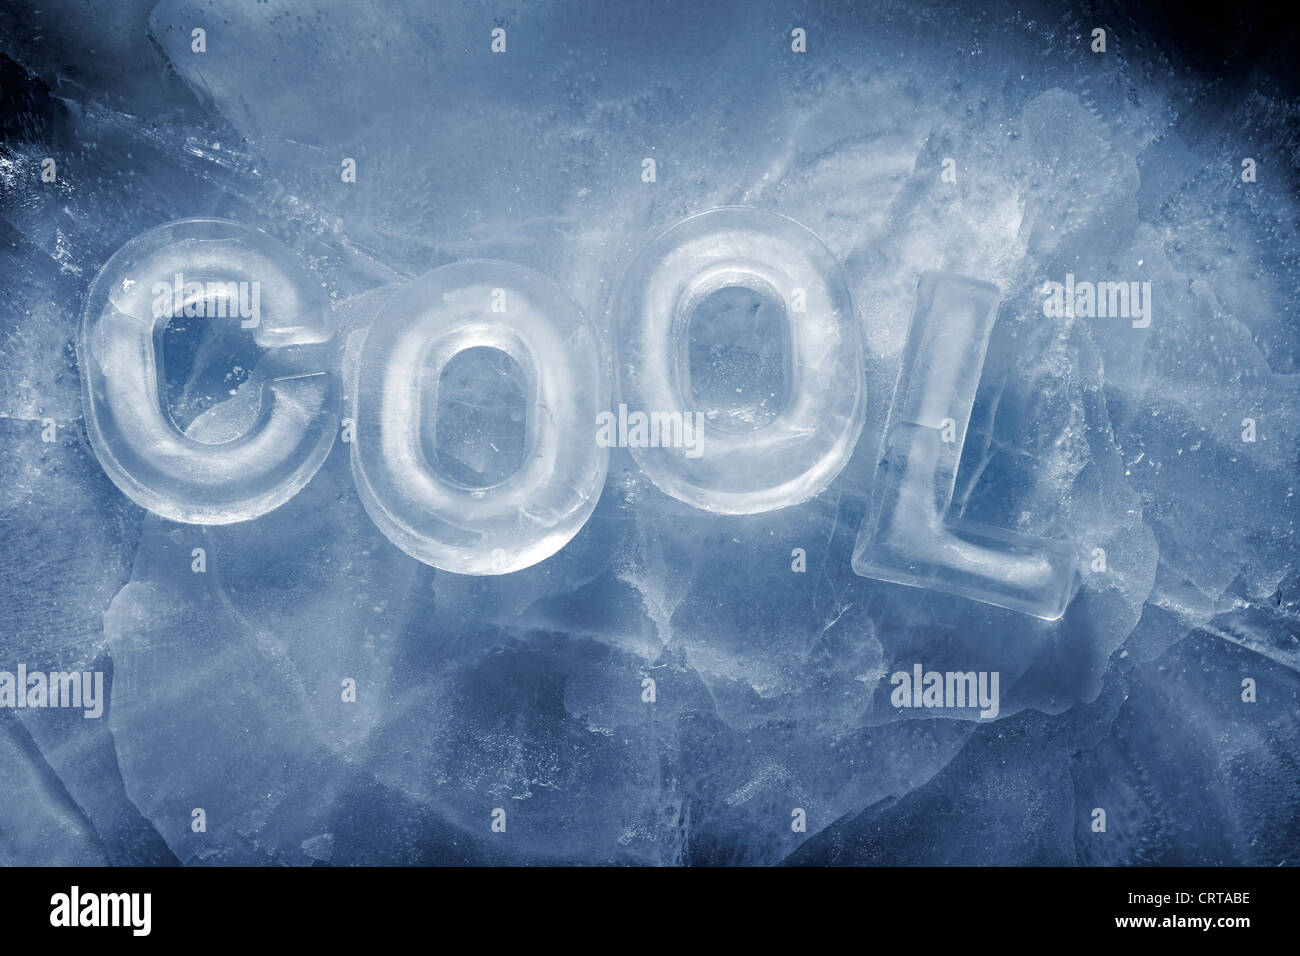 Mot 'cool' écrit avec real ice lettres. Photo Stock